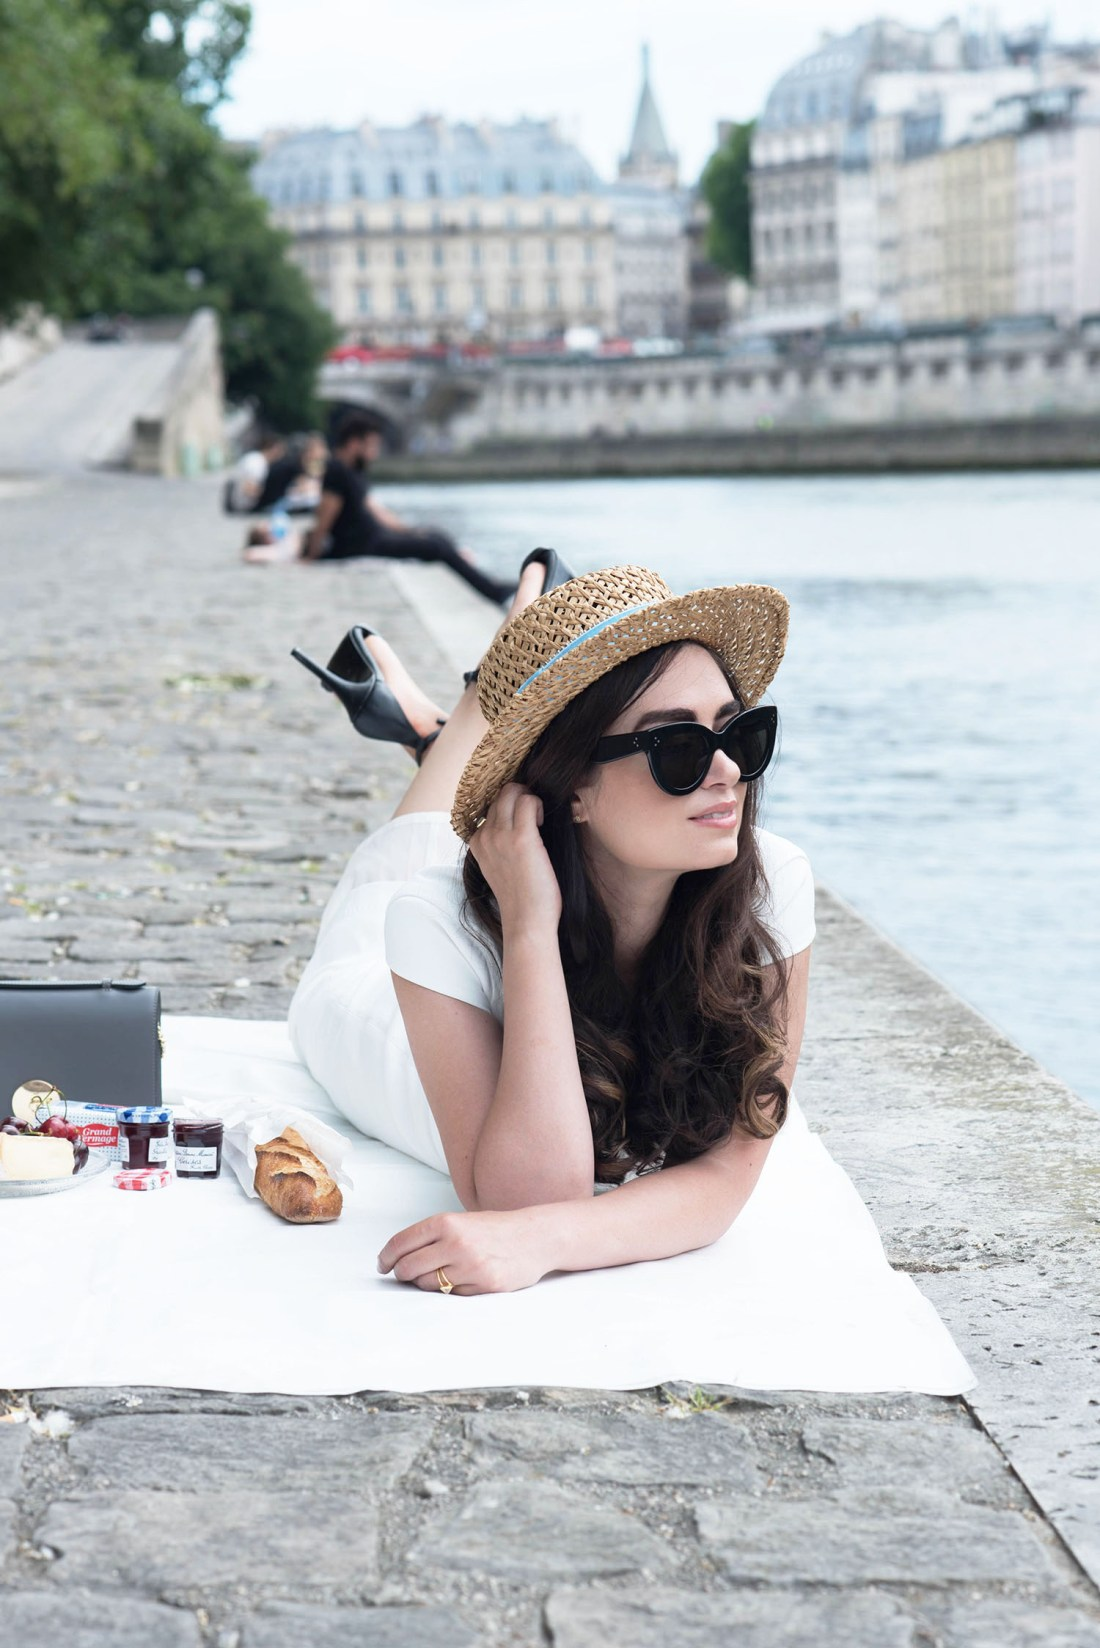 Fashion blogger Cee Fardoe of Coco & Vera celebrates Bastille Day with a picnic on the quais de la Seine wearing an Ivy & Oak dress